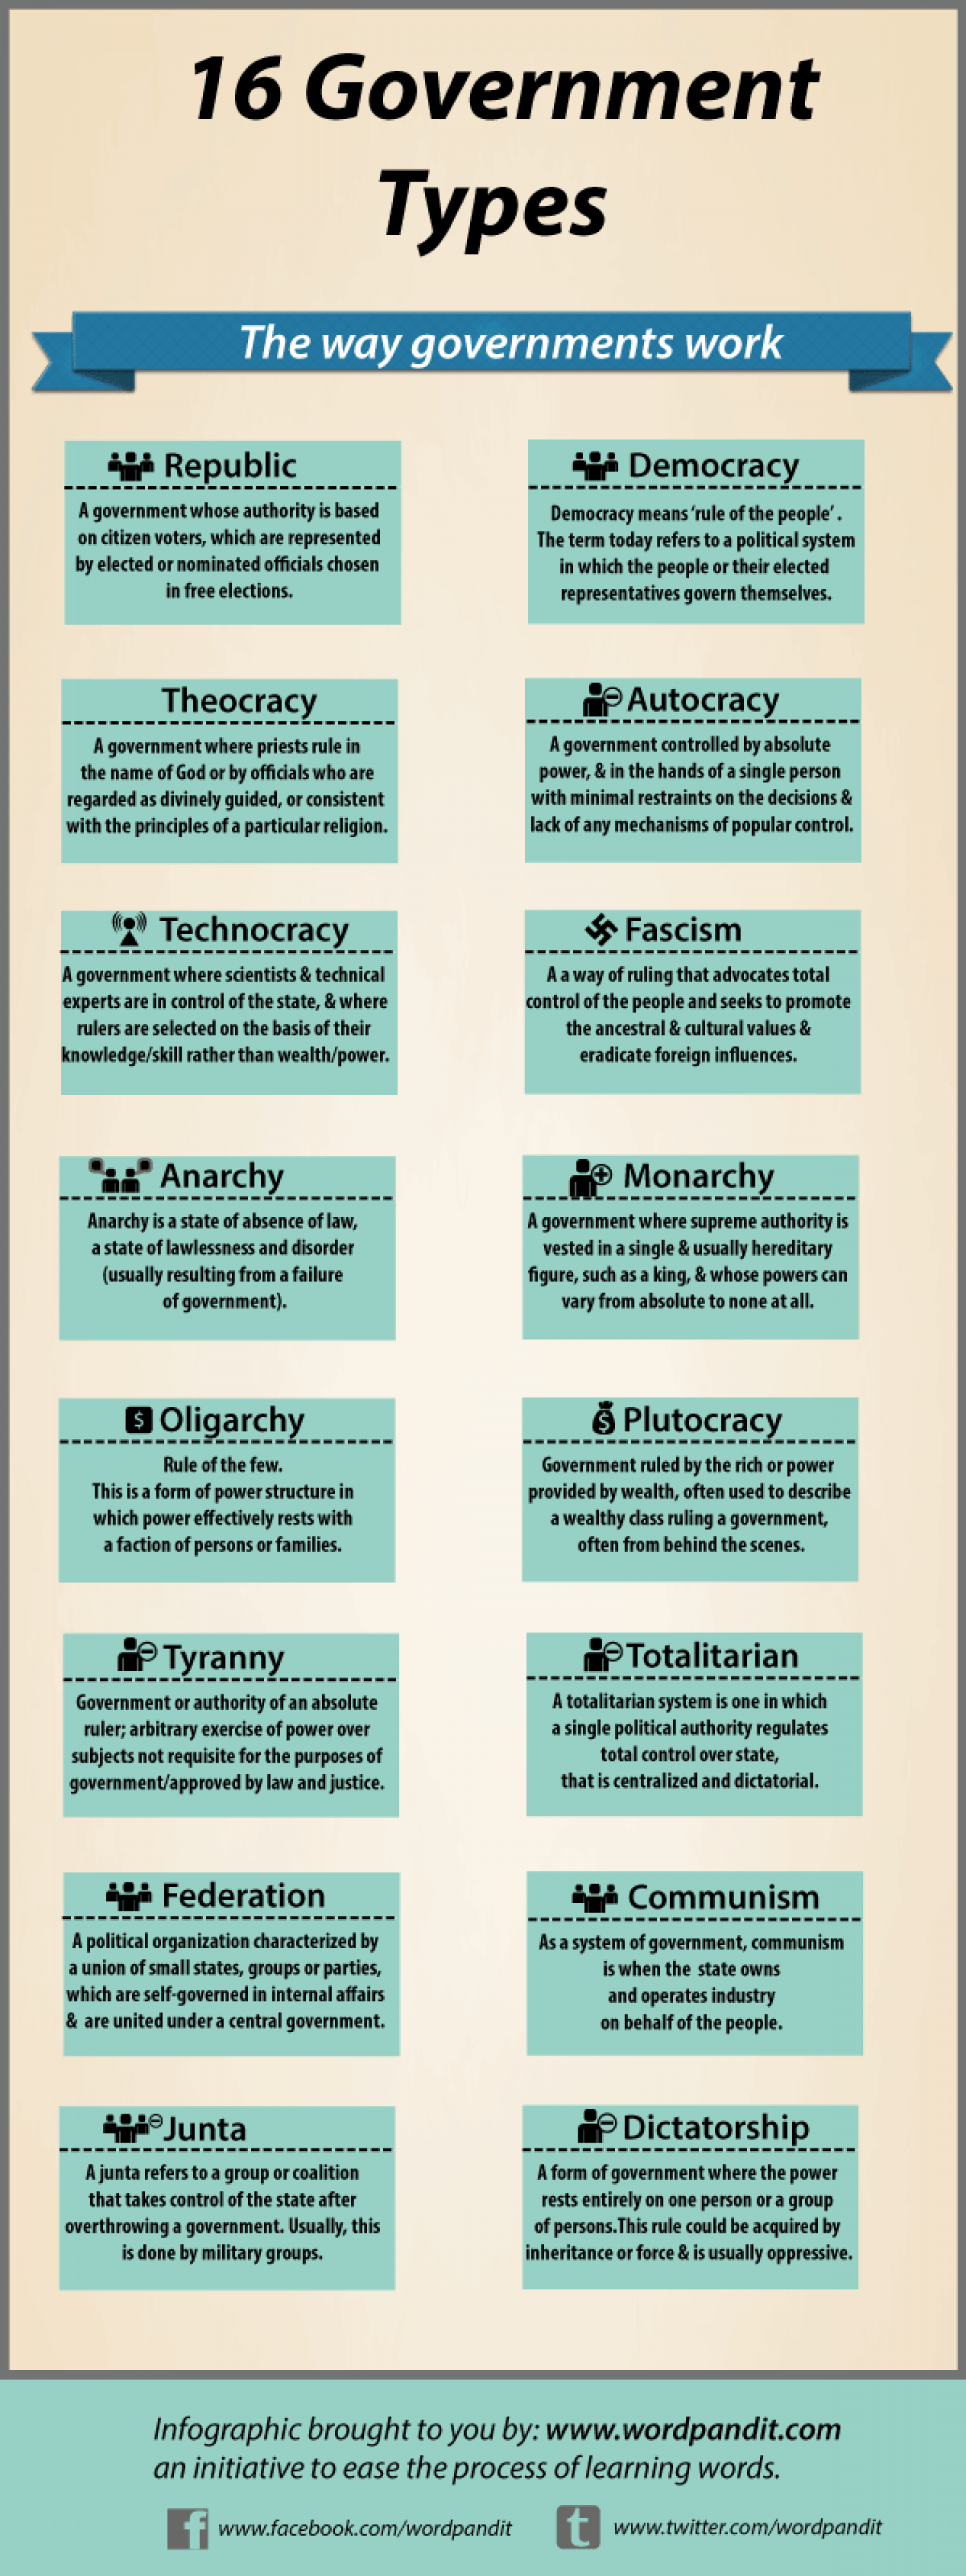 16 Types Of Governments Visu L Ly